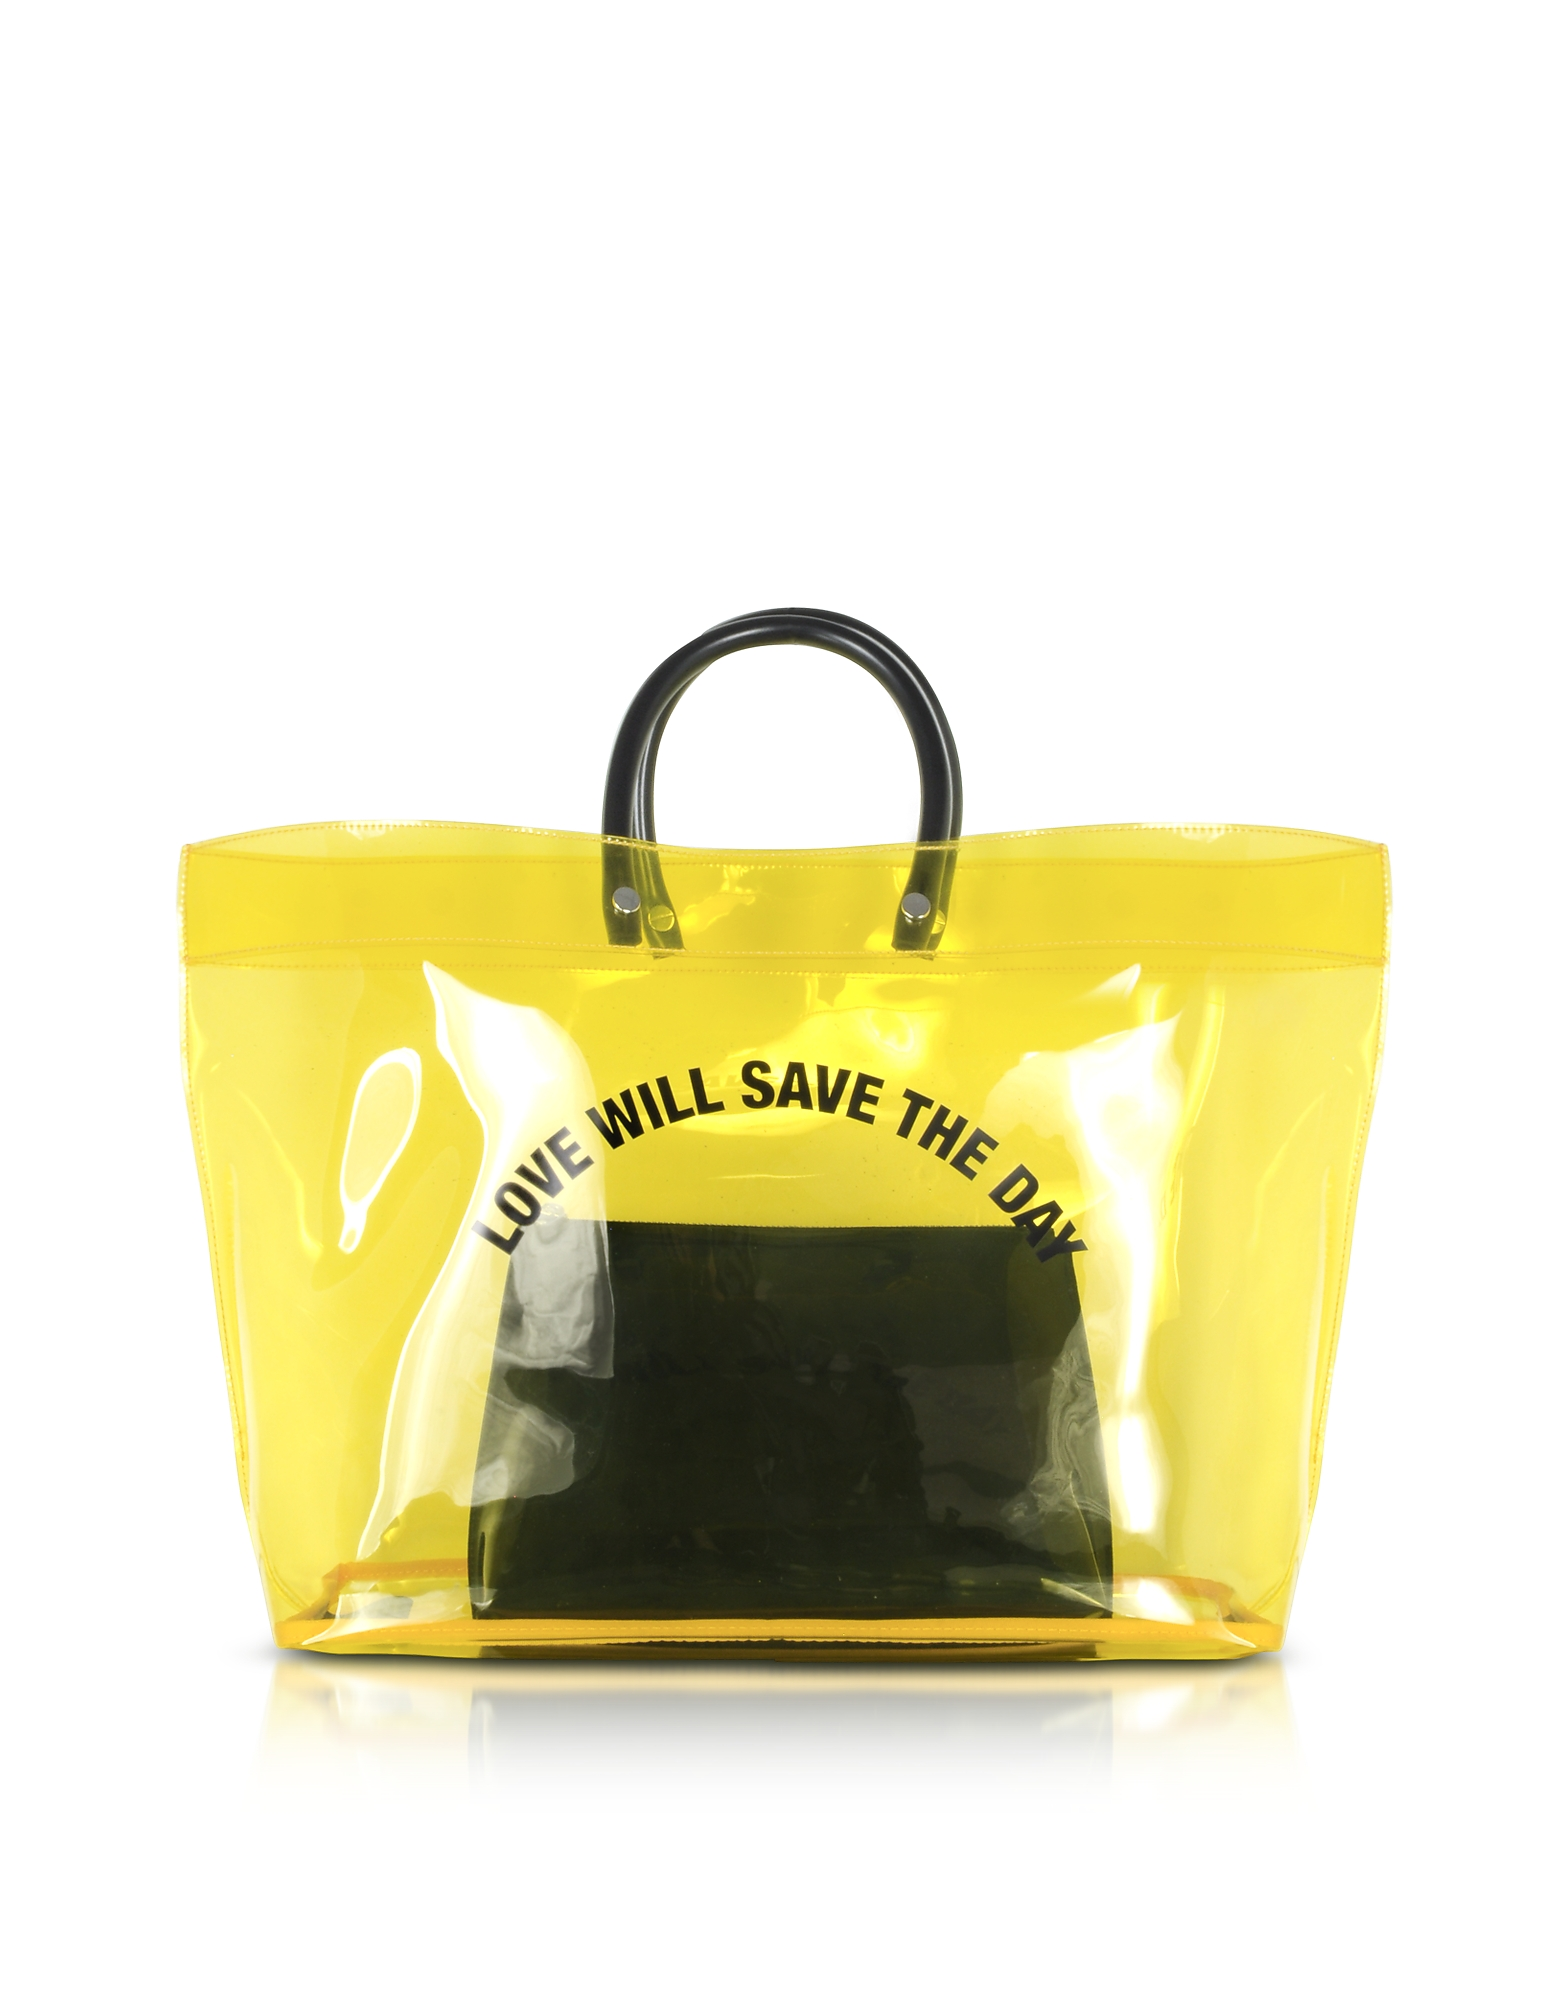 DSquared2 Handbags, Love Will Save the Day Yellow Medium Tote Bag